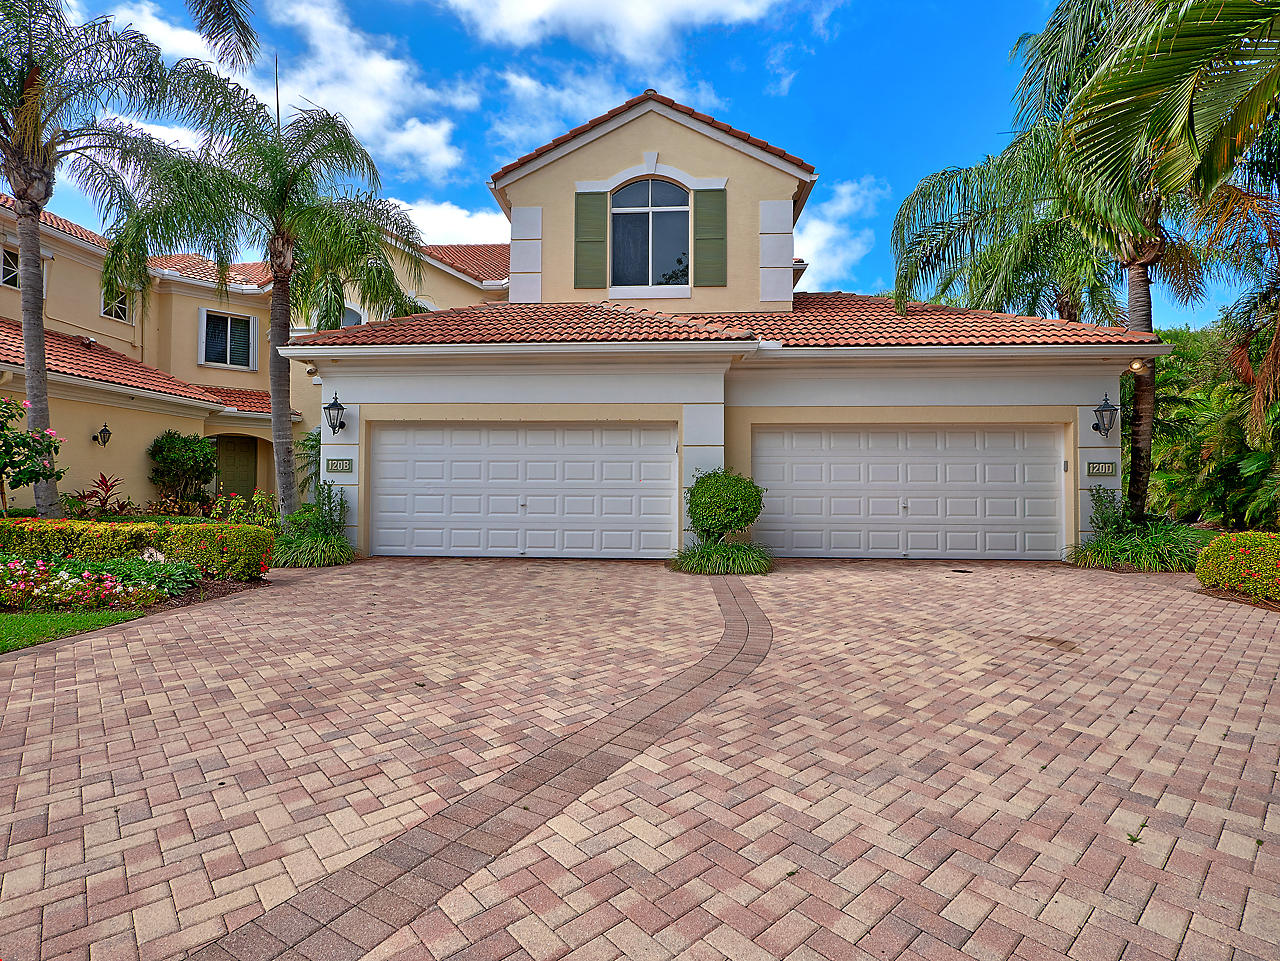 Photo of 120 Palm Bay Drive #d